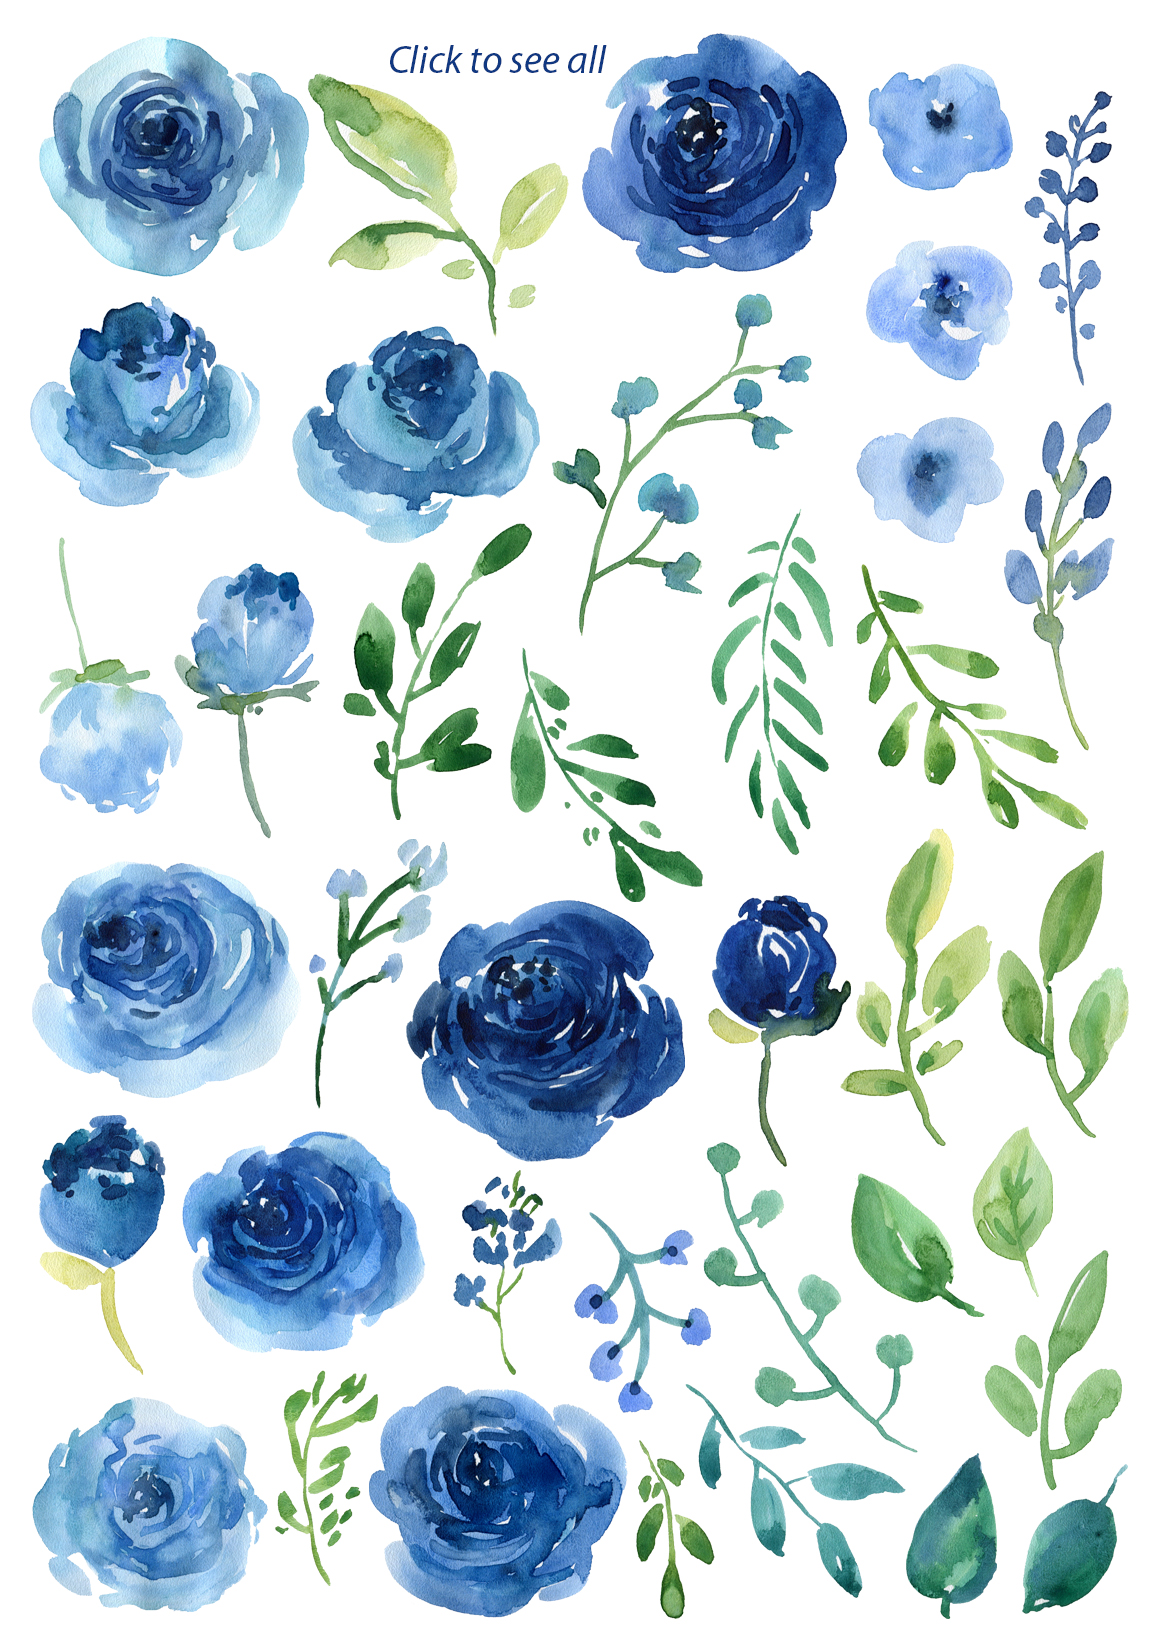 Blue Watercolor Roses Flowers Leaves example image 3